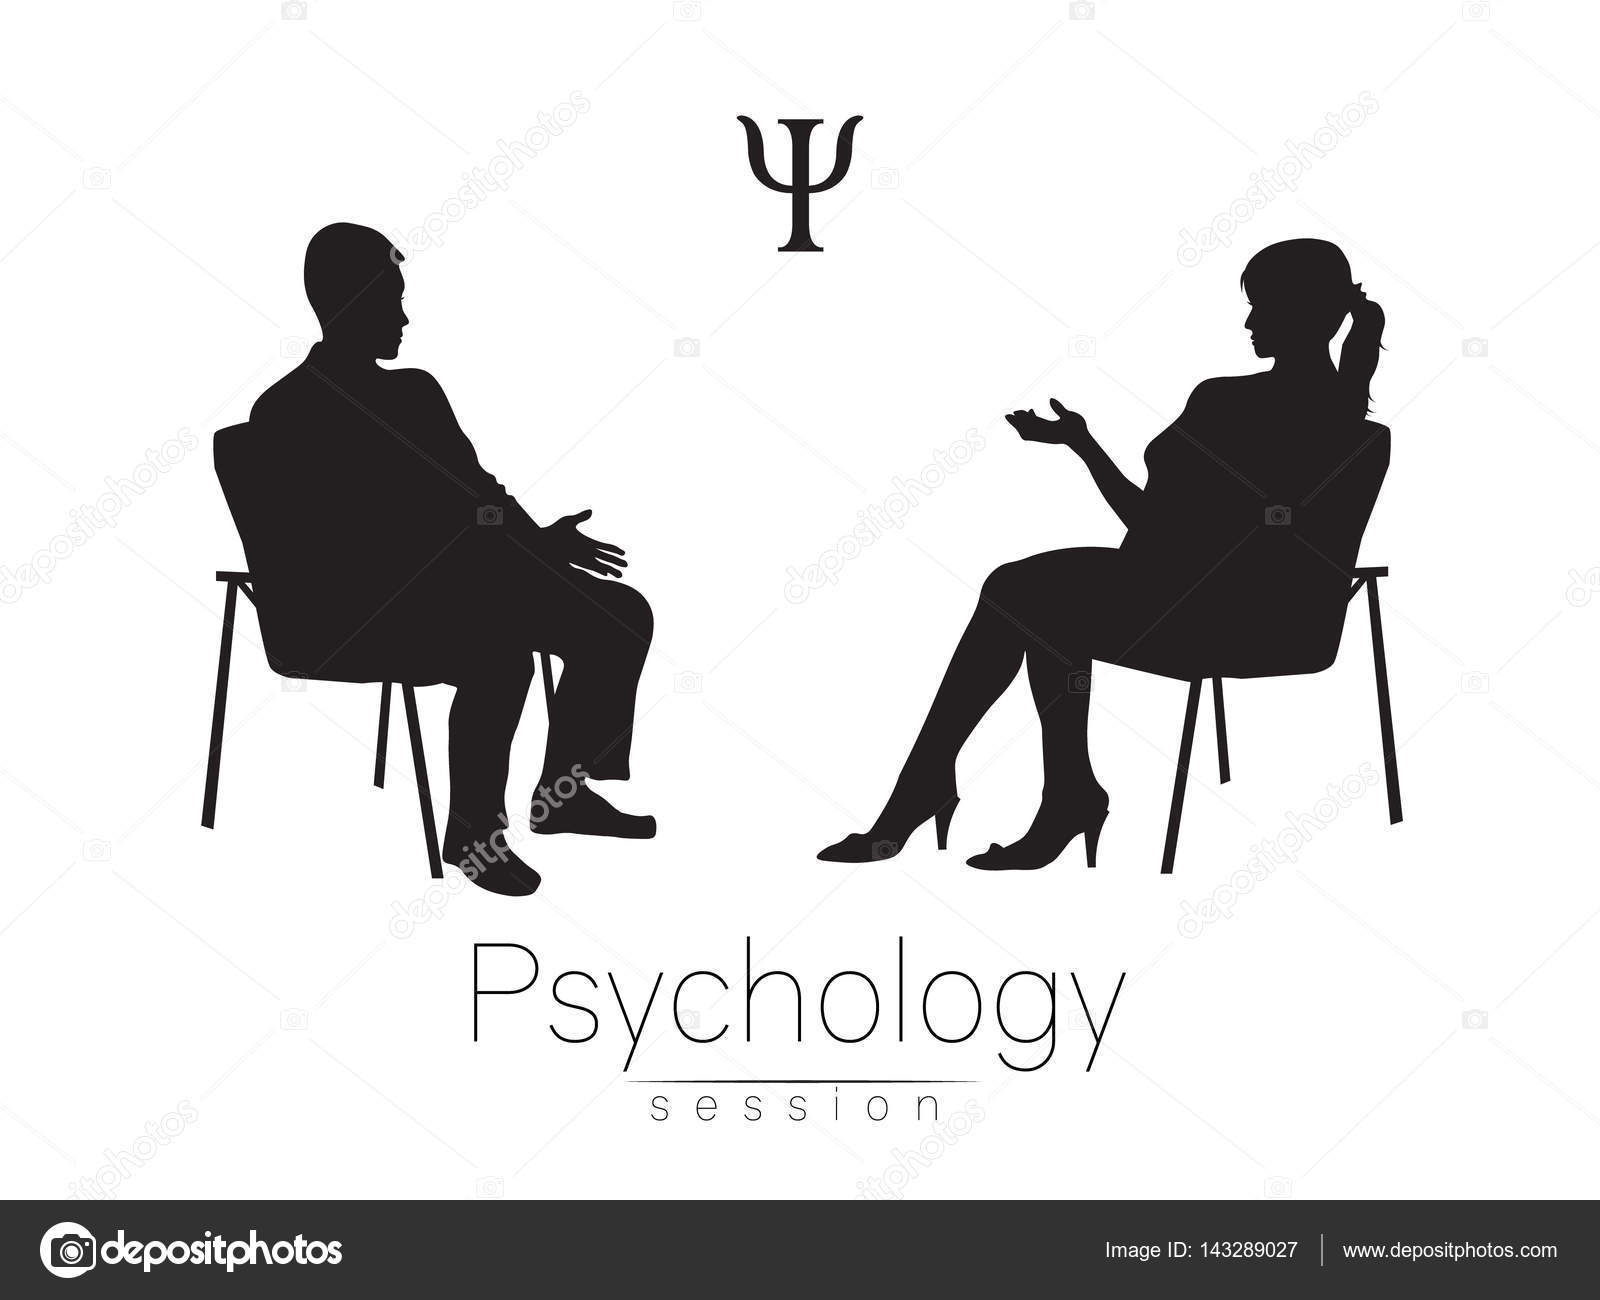 Psychotherapy Session